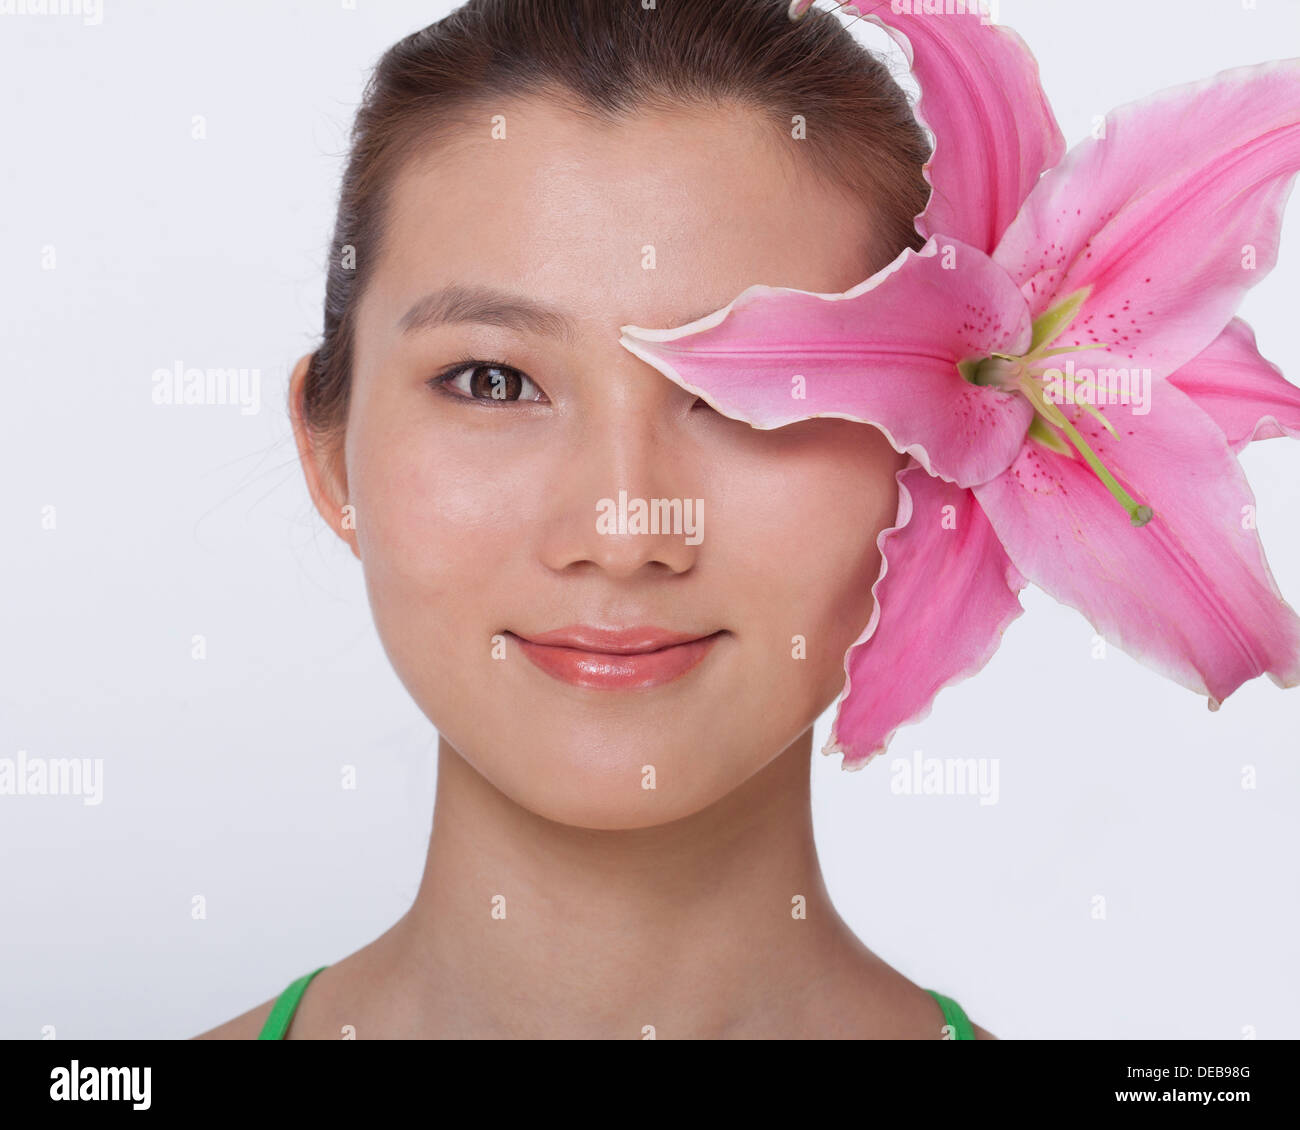 Portrait of young, smiling, beautiful woman with a large pink flower tucked behind her ear, studio shot - Stock Image